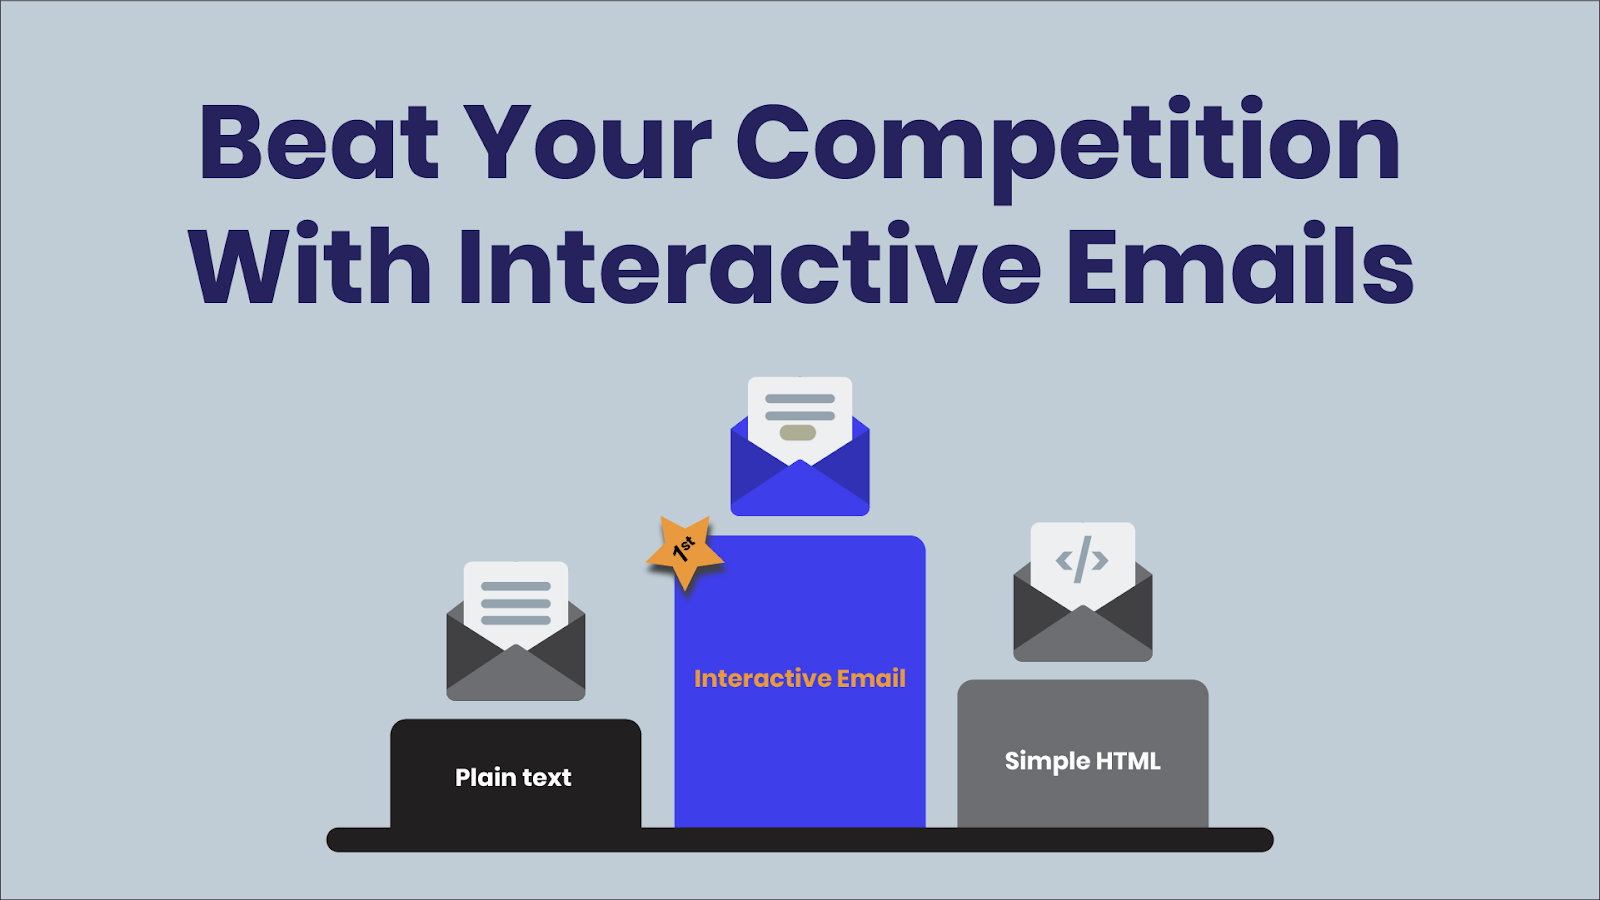 Interactive emails give you an edge over simple HTML and plain text emails